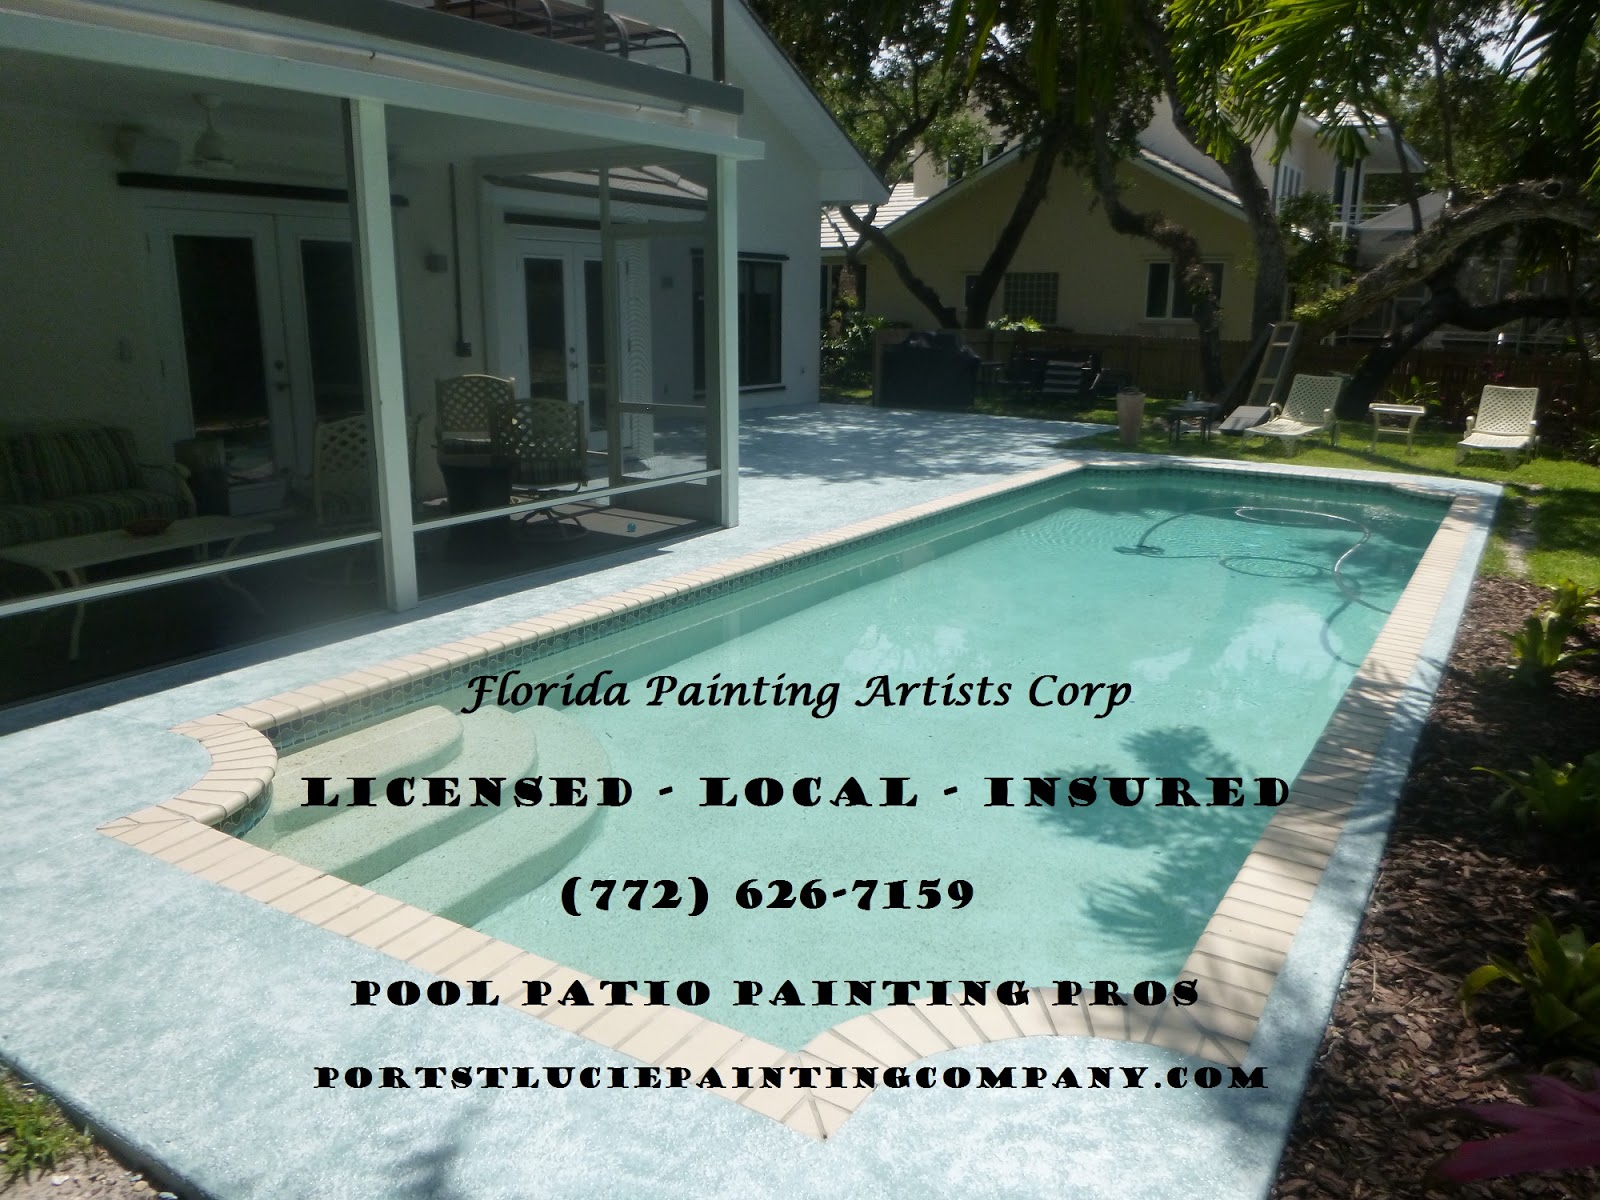 Pool Patio Painting Concrete Painting Driveway Painting